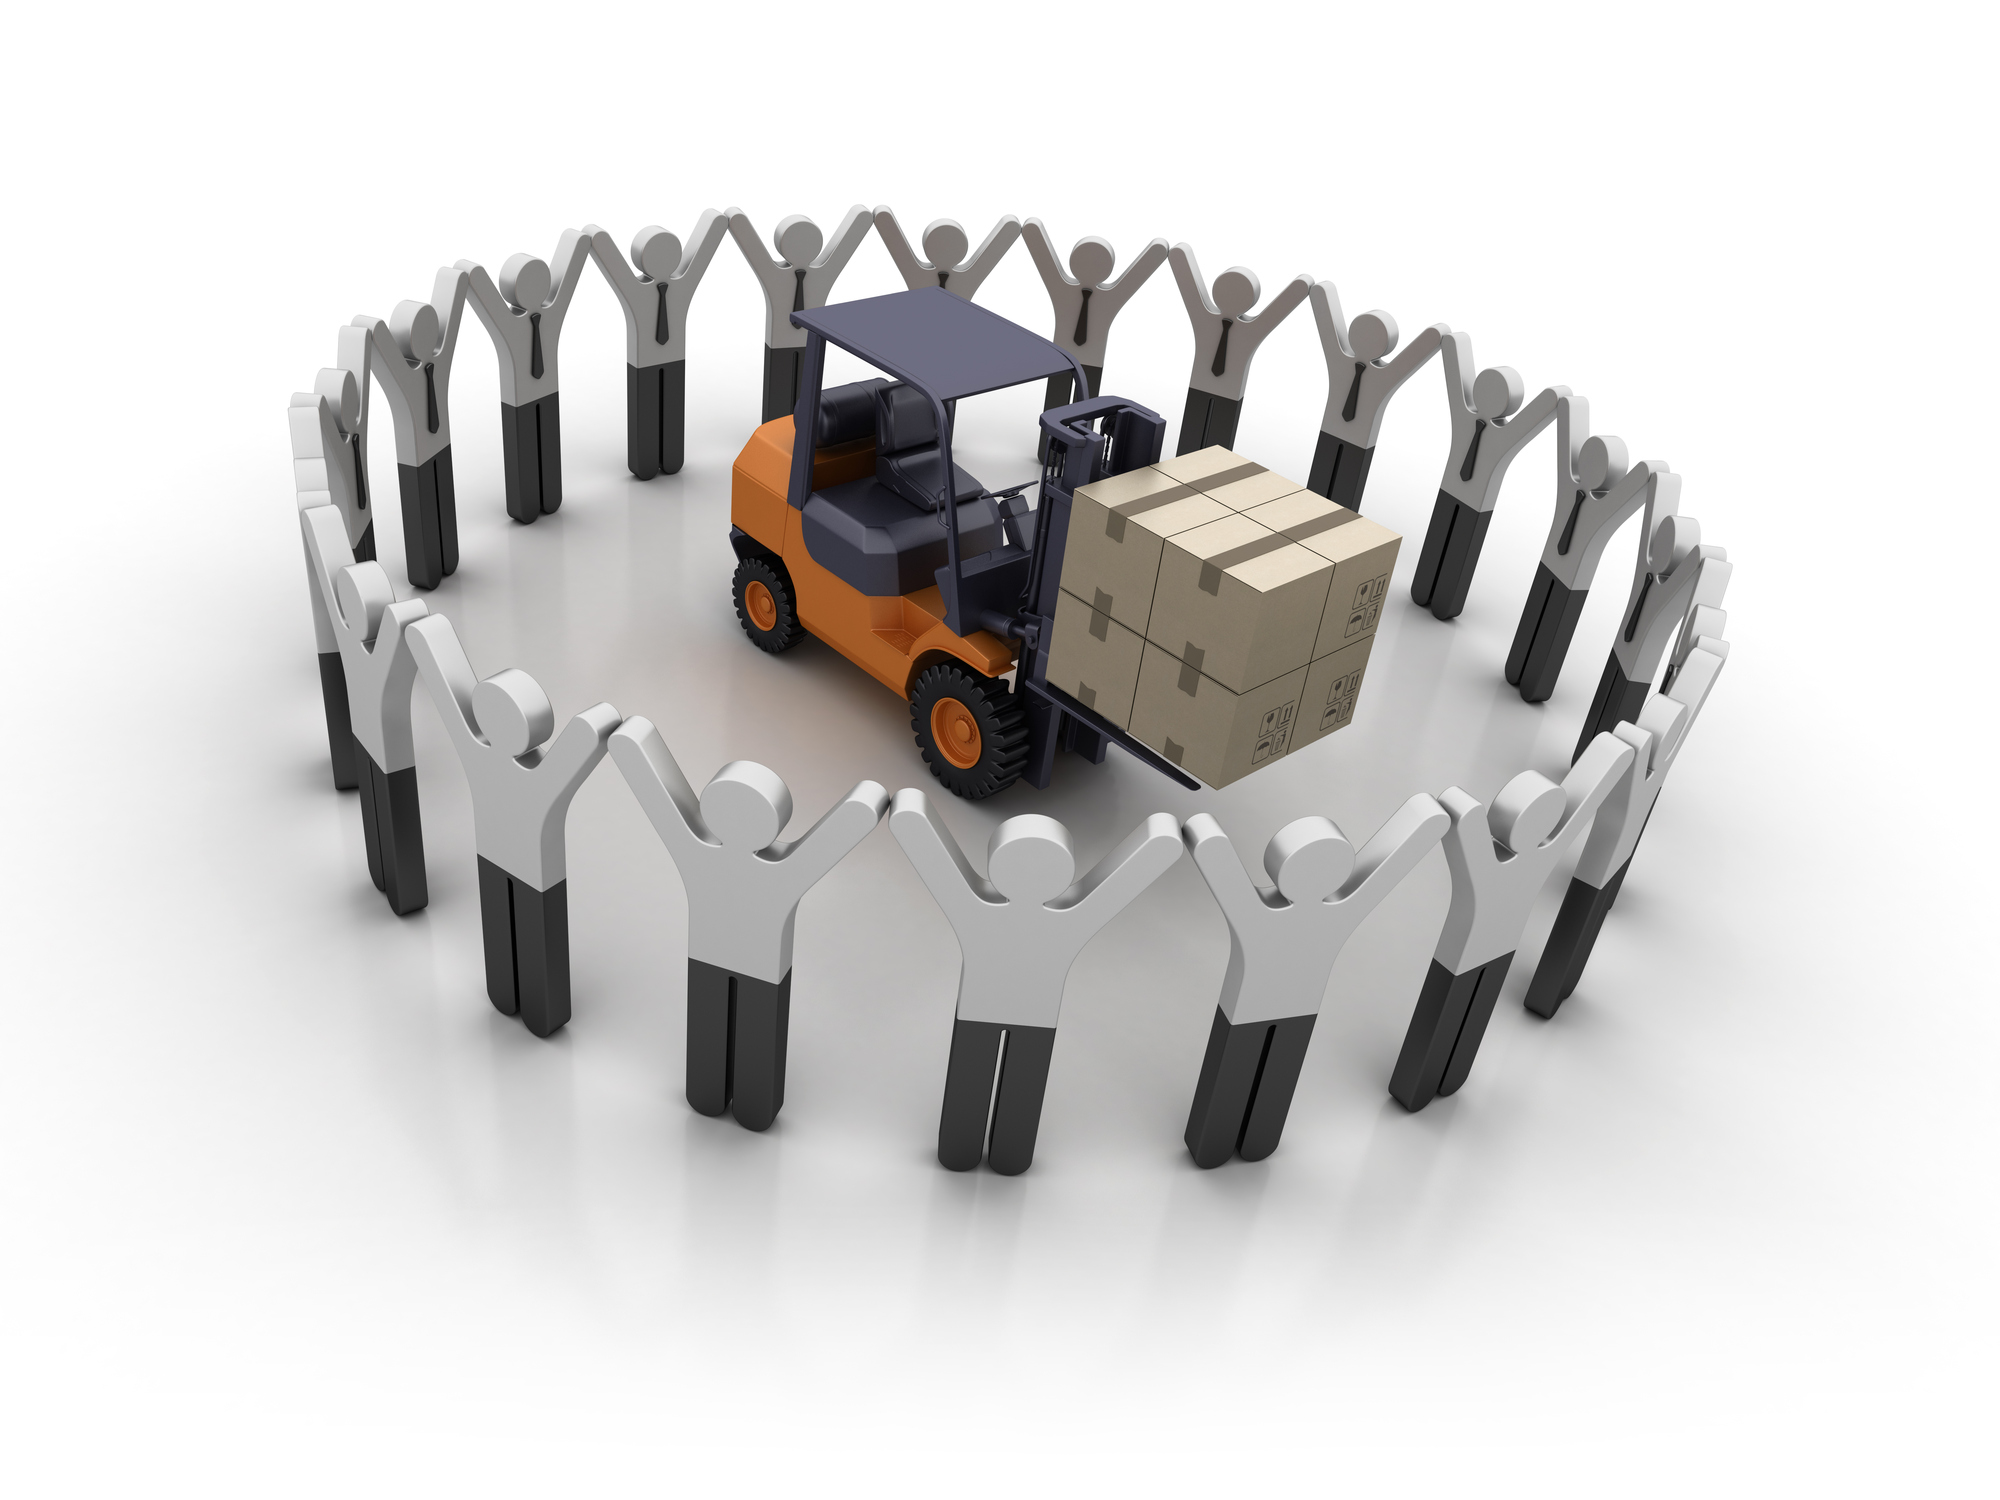 Pictogram Teamwork with Forklift - White Background - 3D Rendering - Newegg Logistics Warehouse